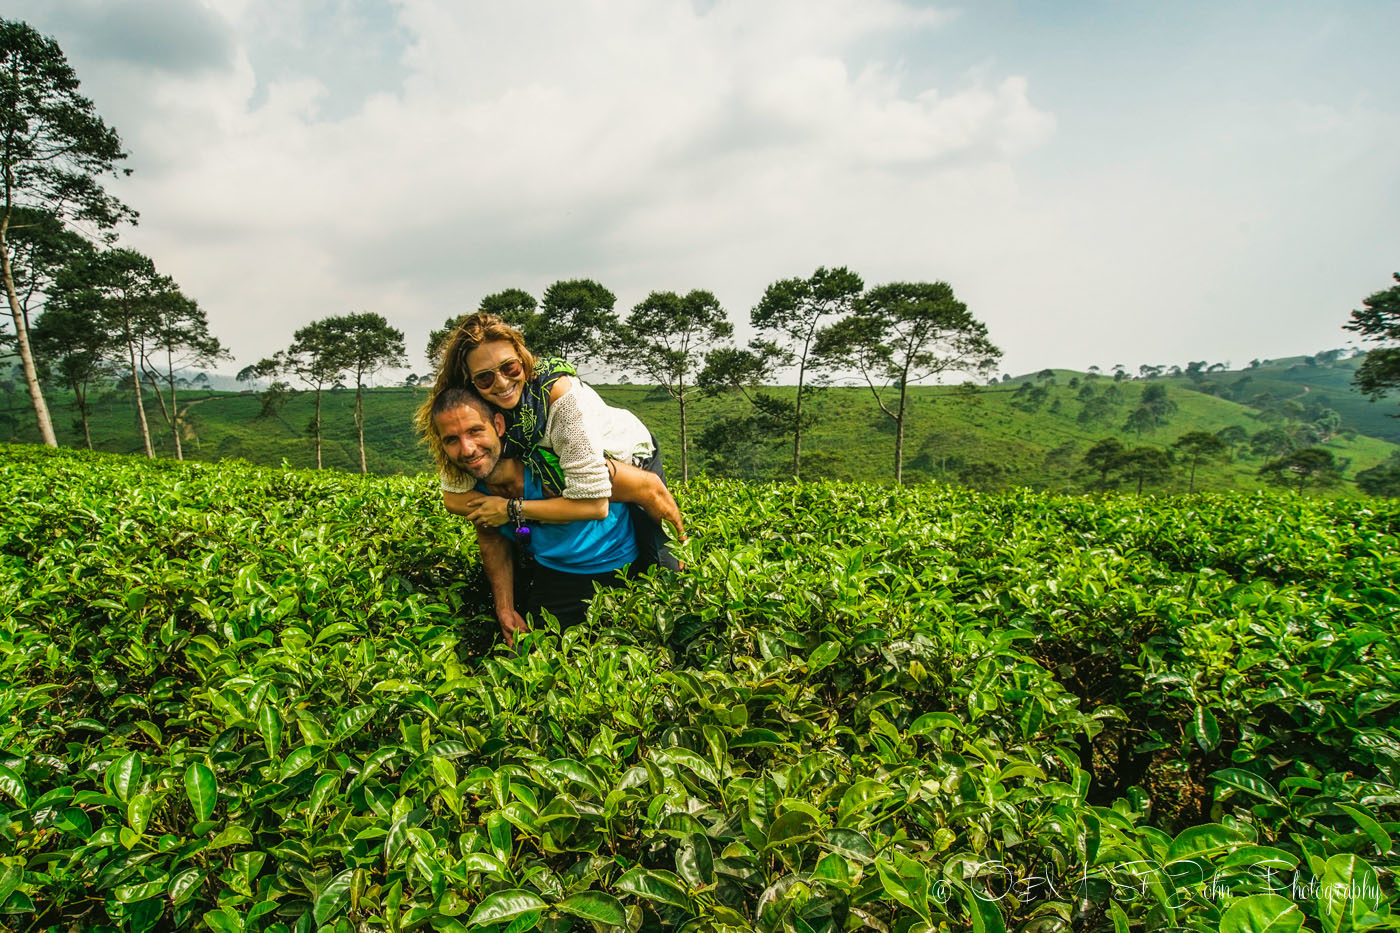 Oksana & Max on a tea plantation in Indonesia